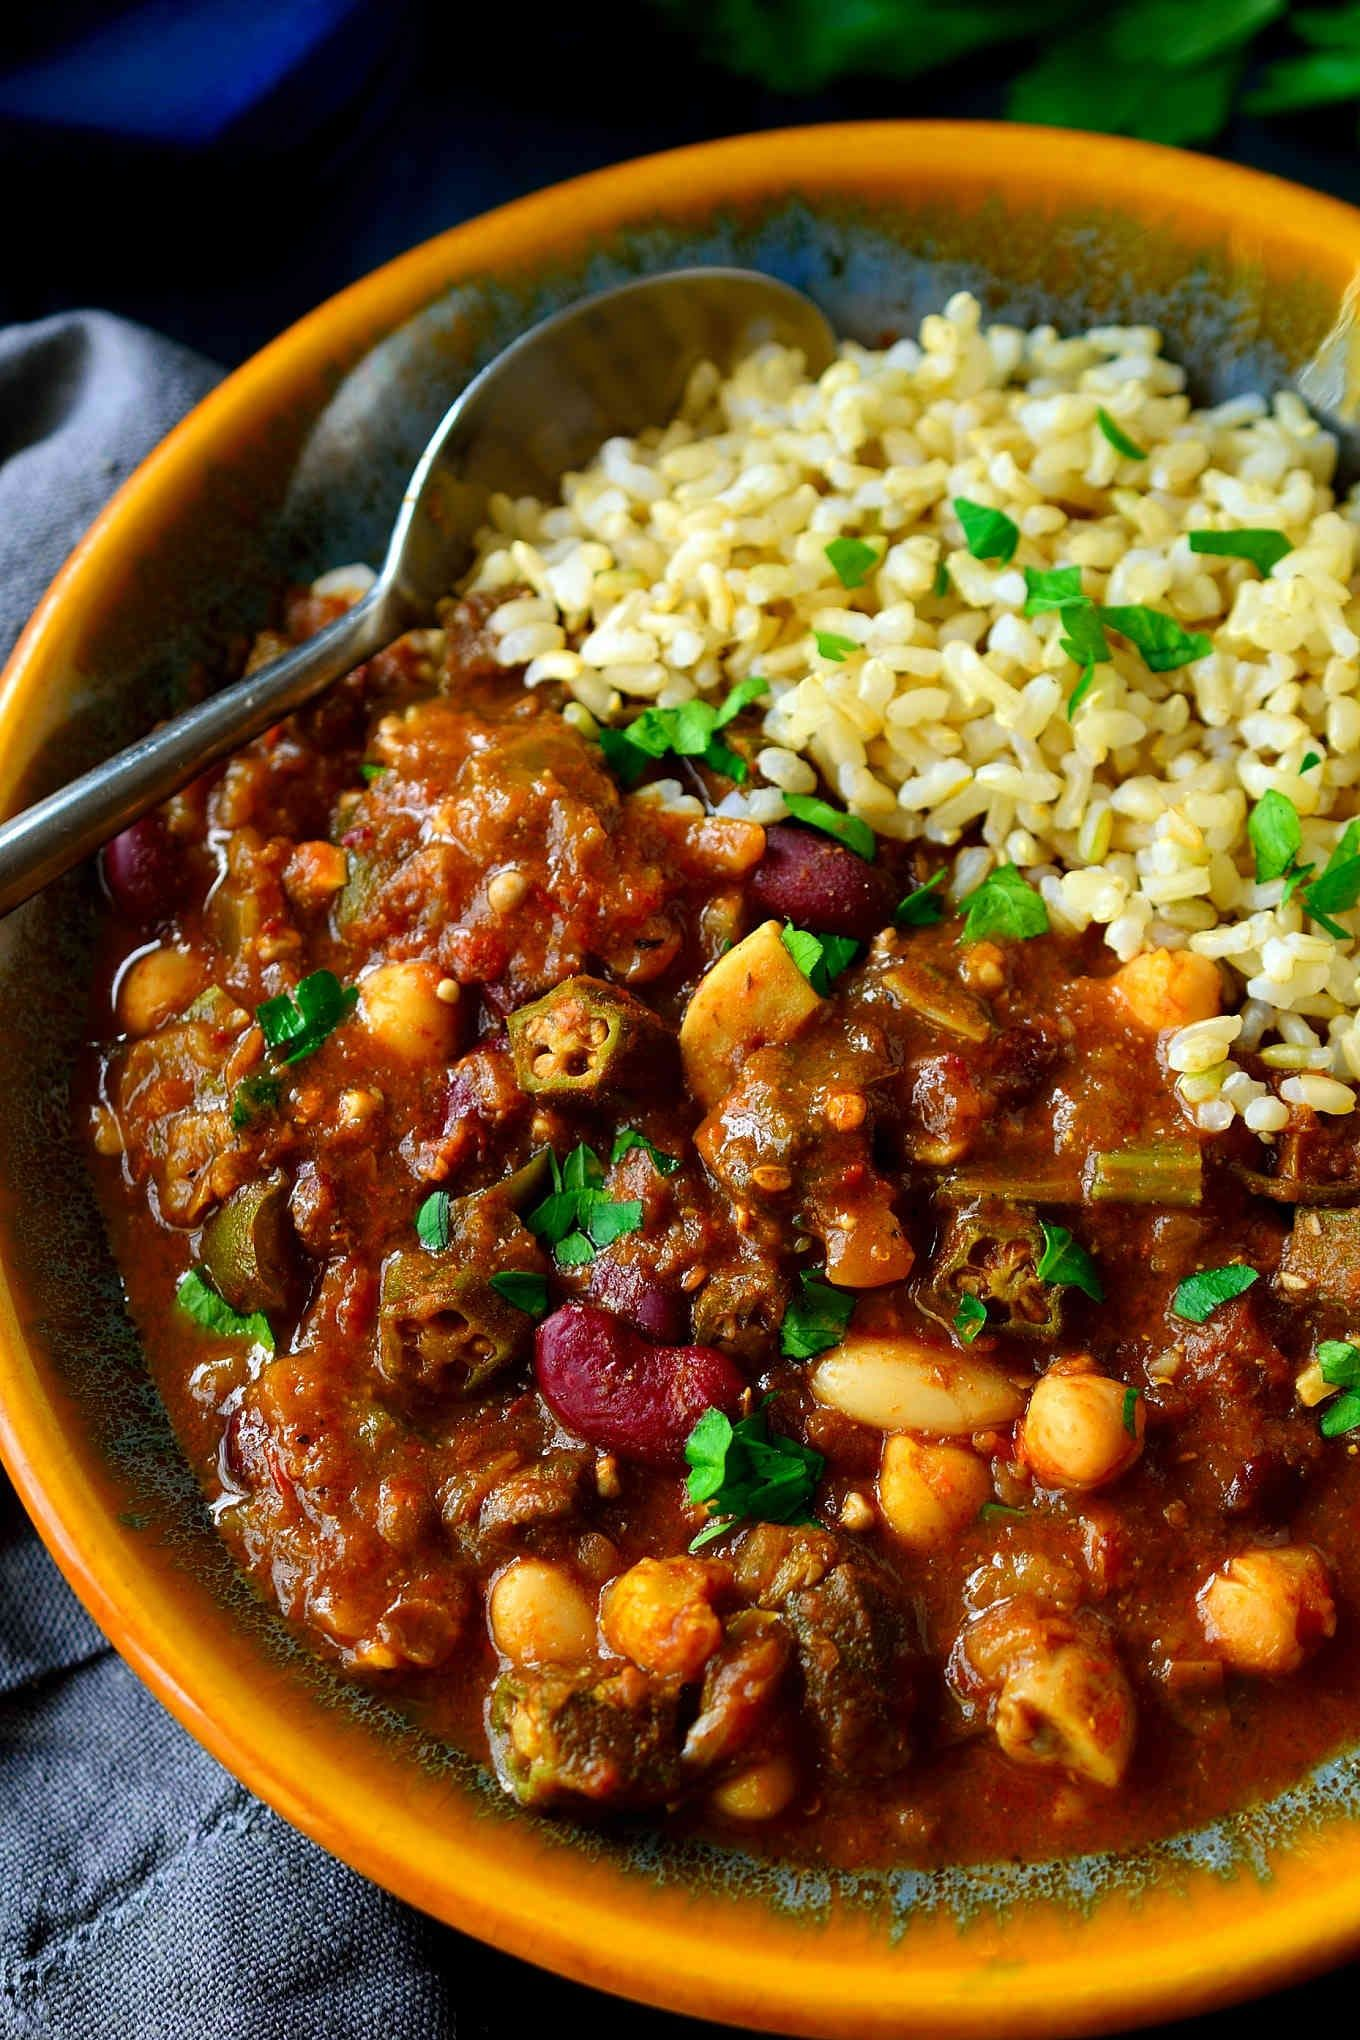 19 vegan soul food recipes for down home comfort gumbo vegans and 19 vegan soul food recipes for down home comfort forumfinder Gallery